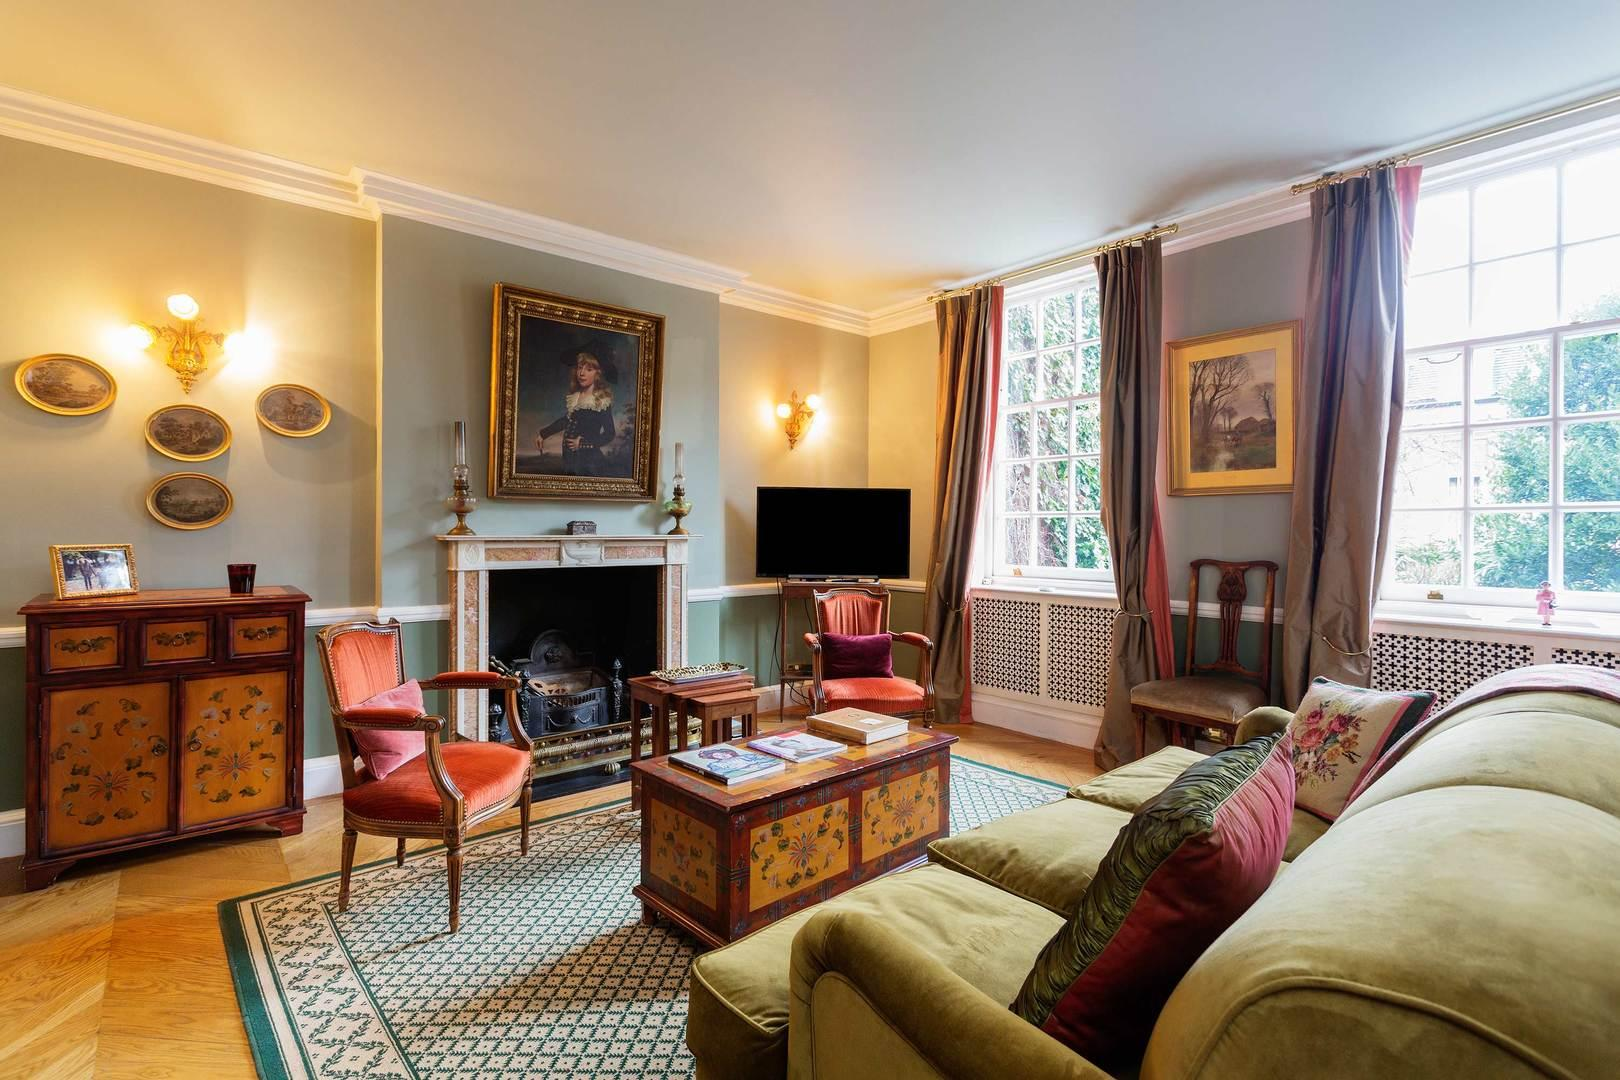 Property Image 1 - Spectacular Traditional Chelsea Home near the Thames